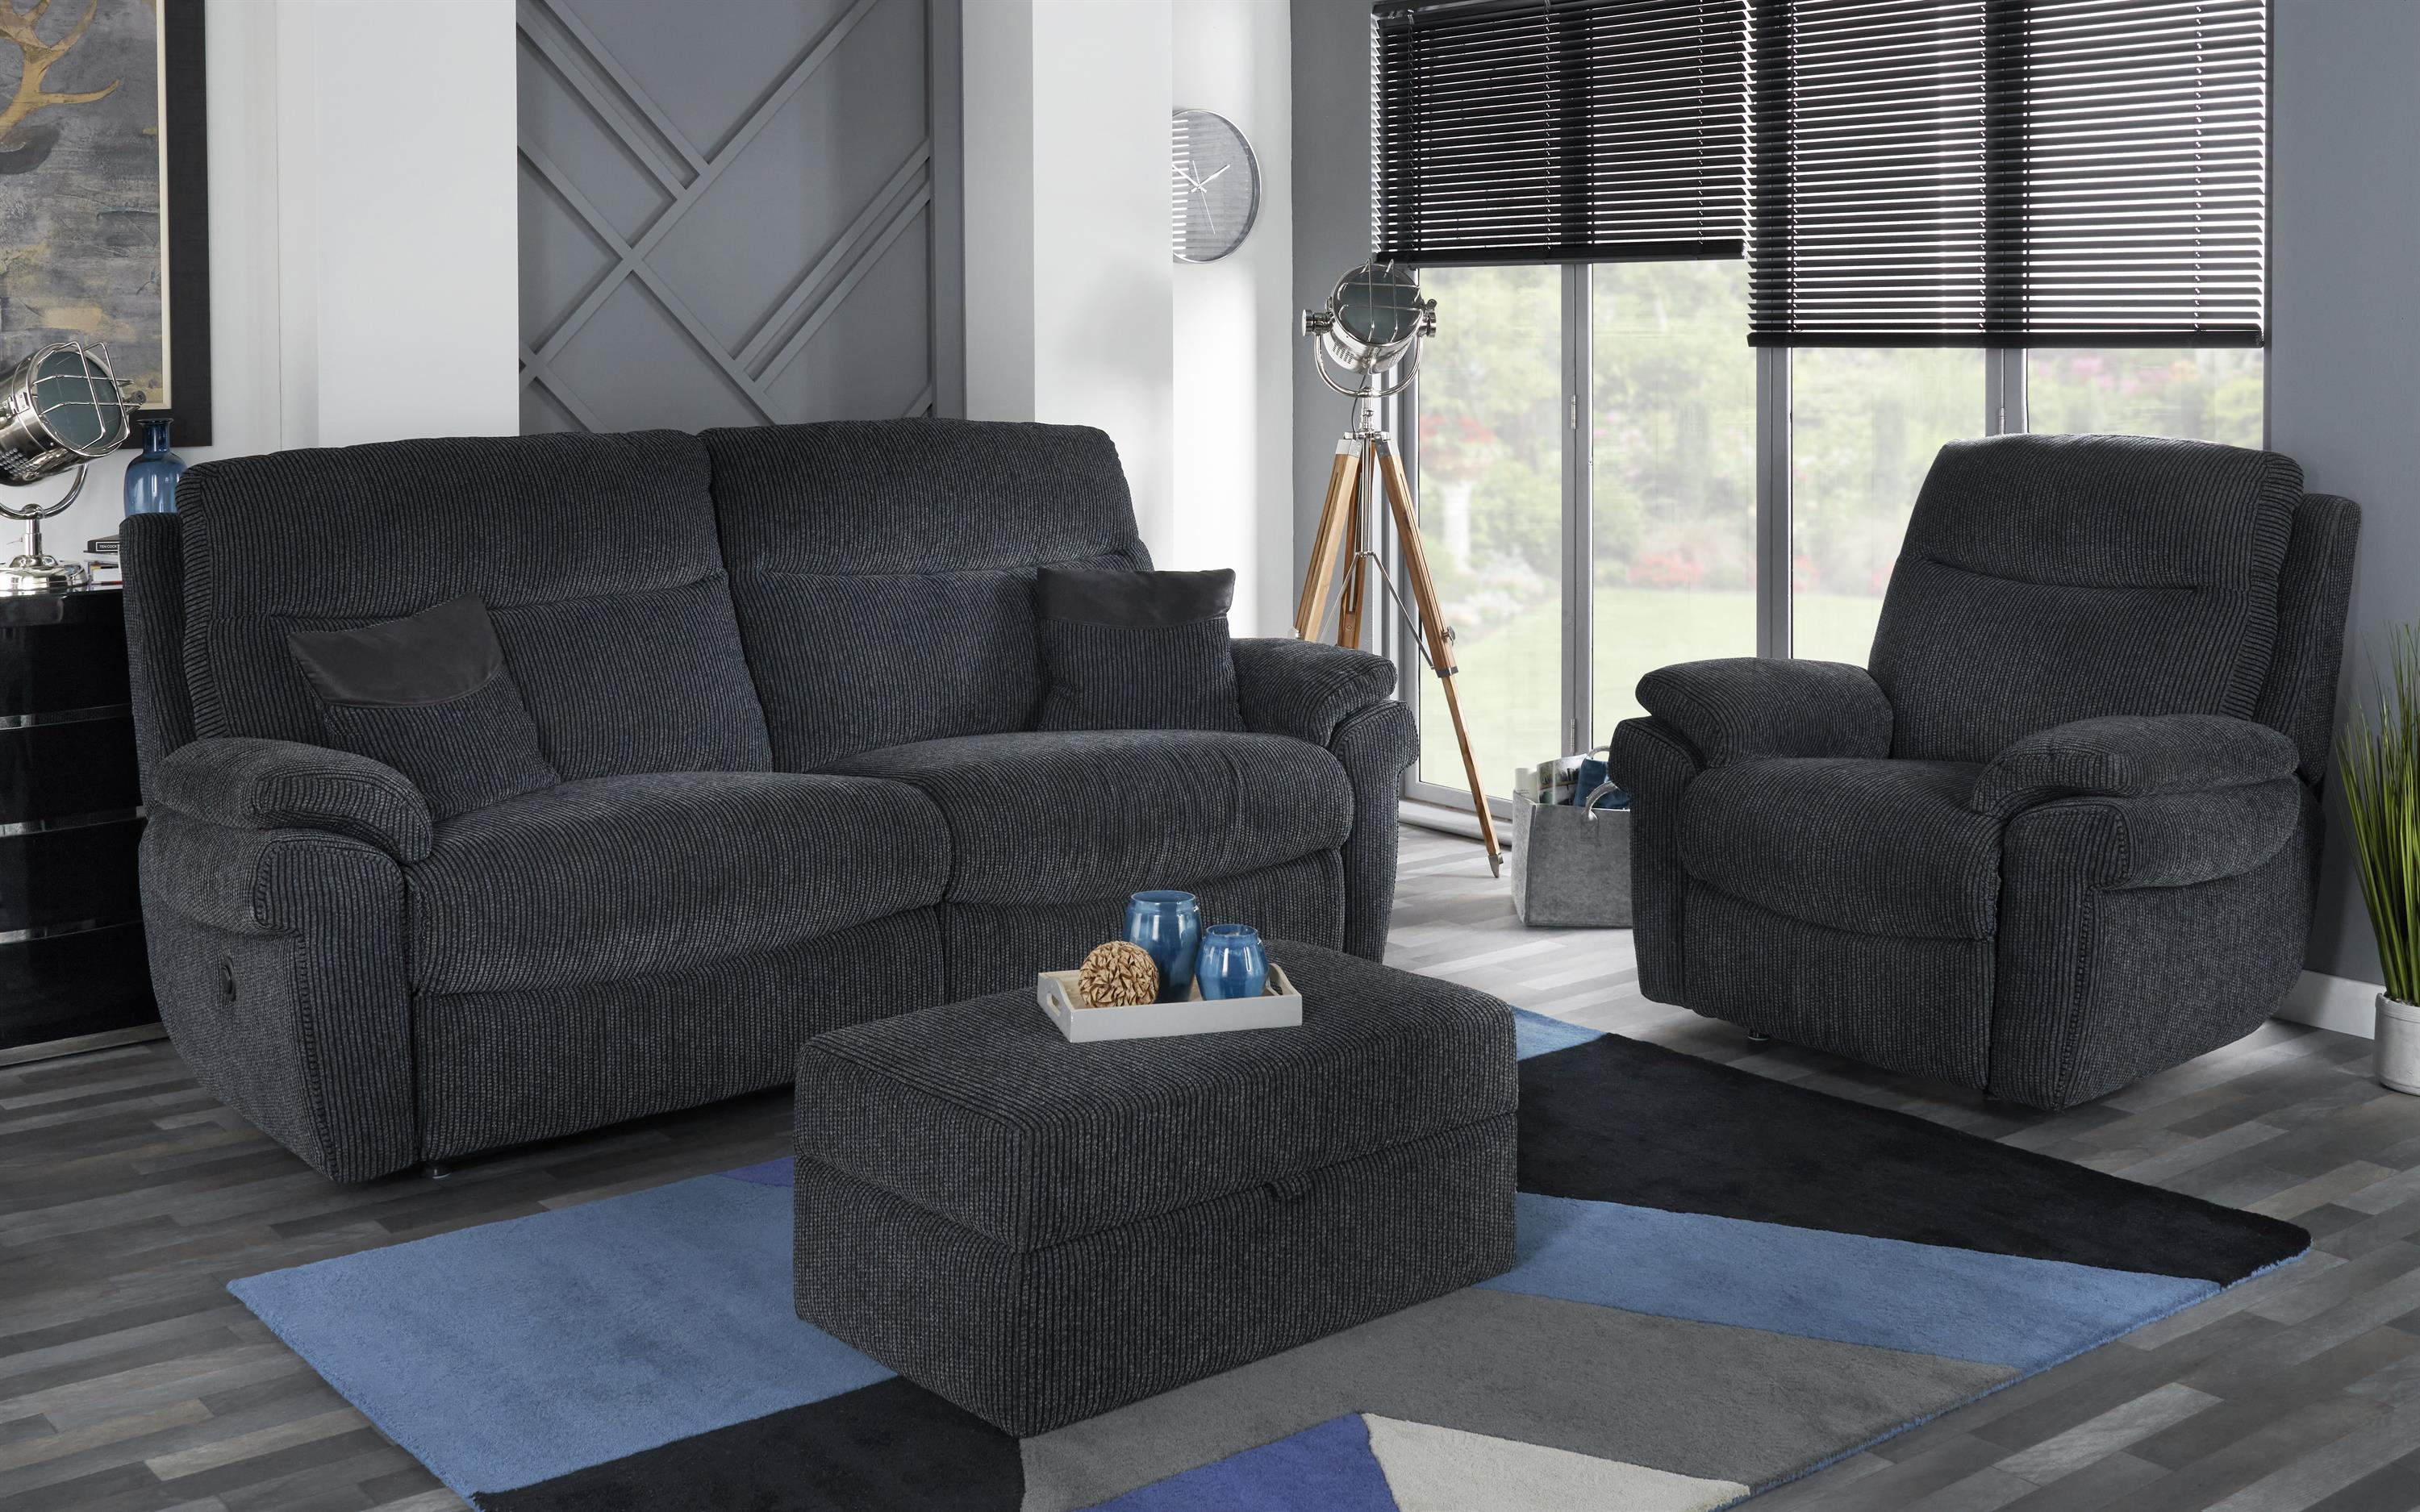 La-Z-Boy Tamla 3 Seater Manual Recliner Sofa, Coda Black, large